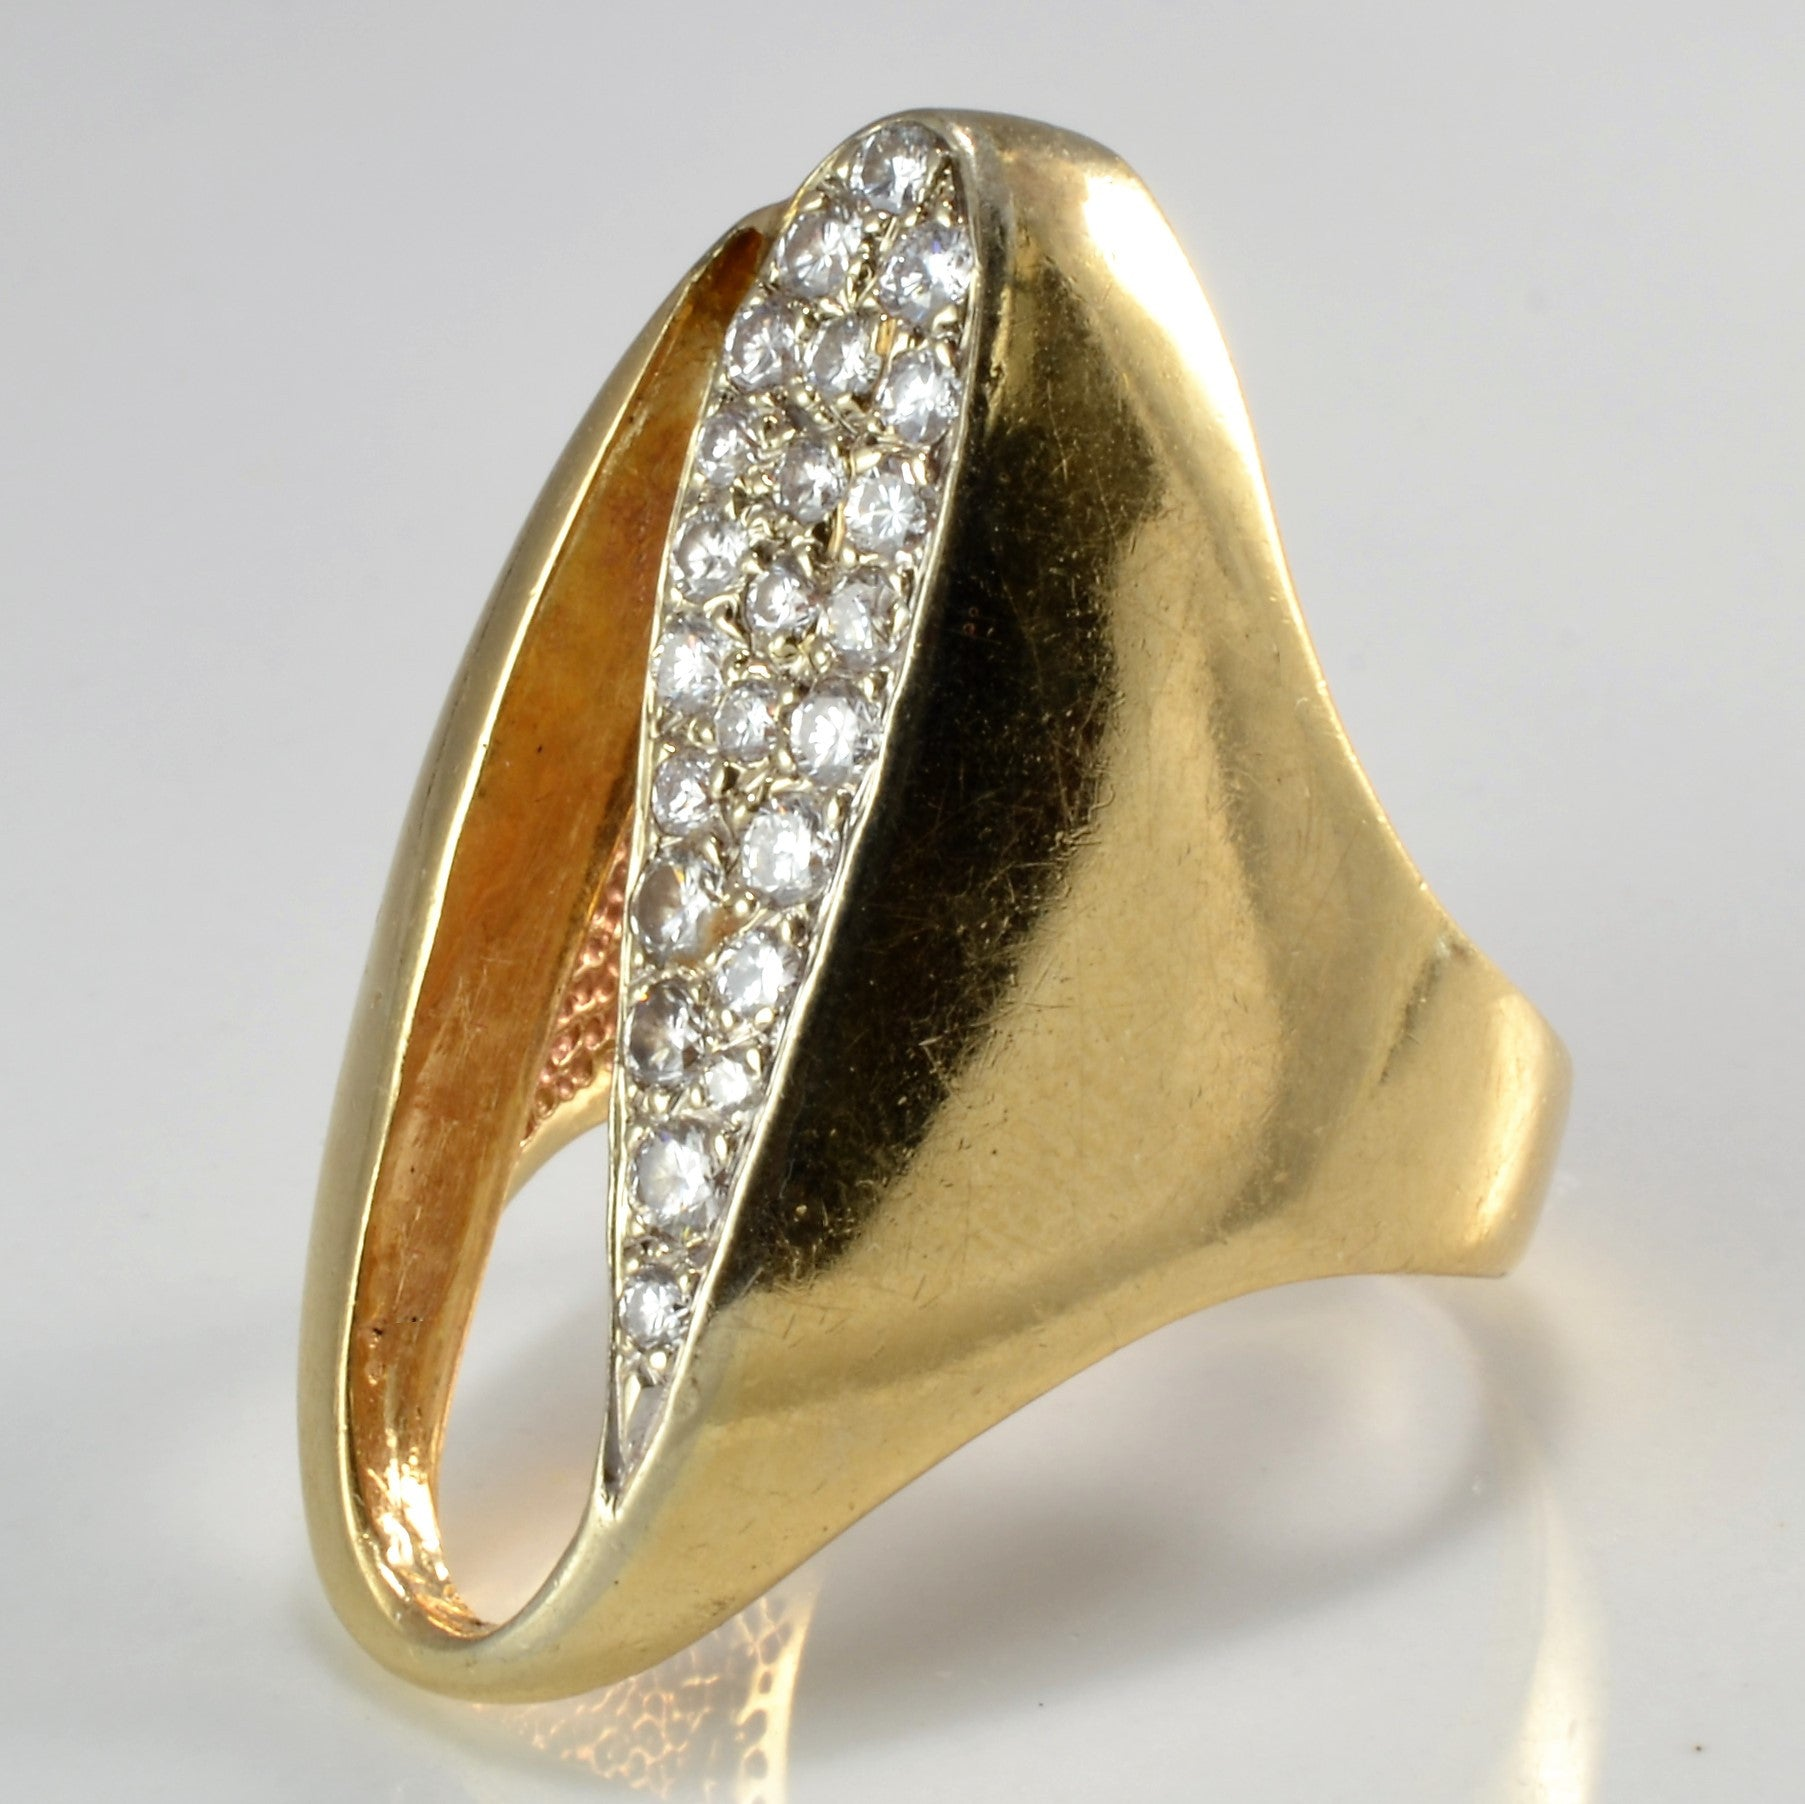 Unique Pattern Chevron Diamond Ring | 0.45 ctw, sz 8.25 |